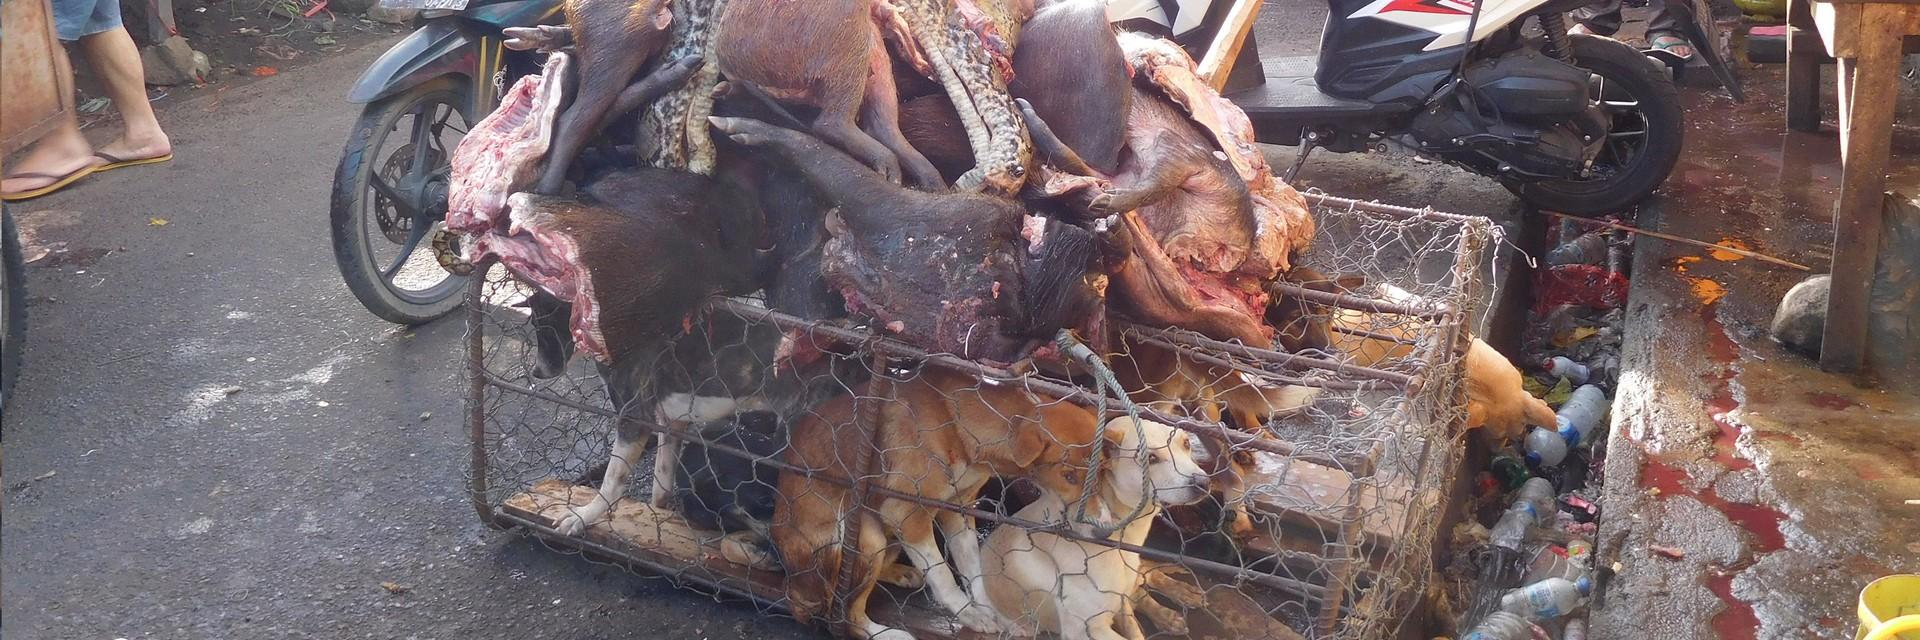 Dead animals above cages of live dogs